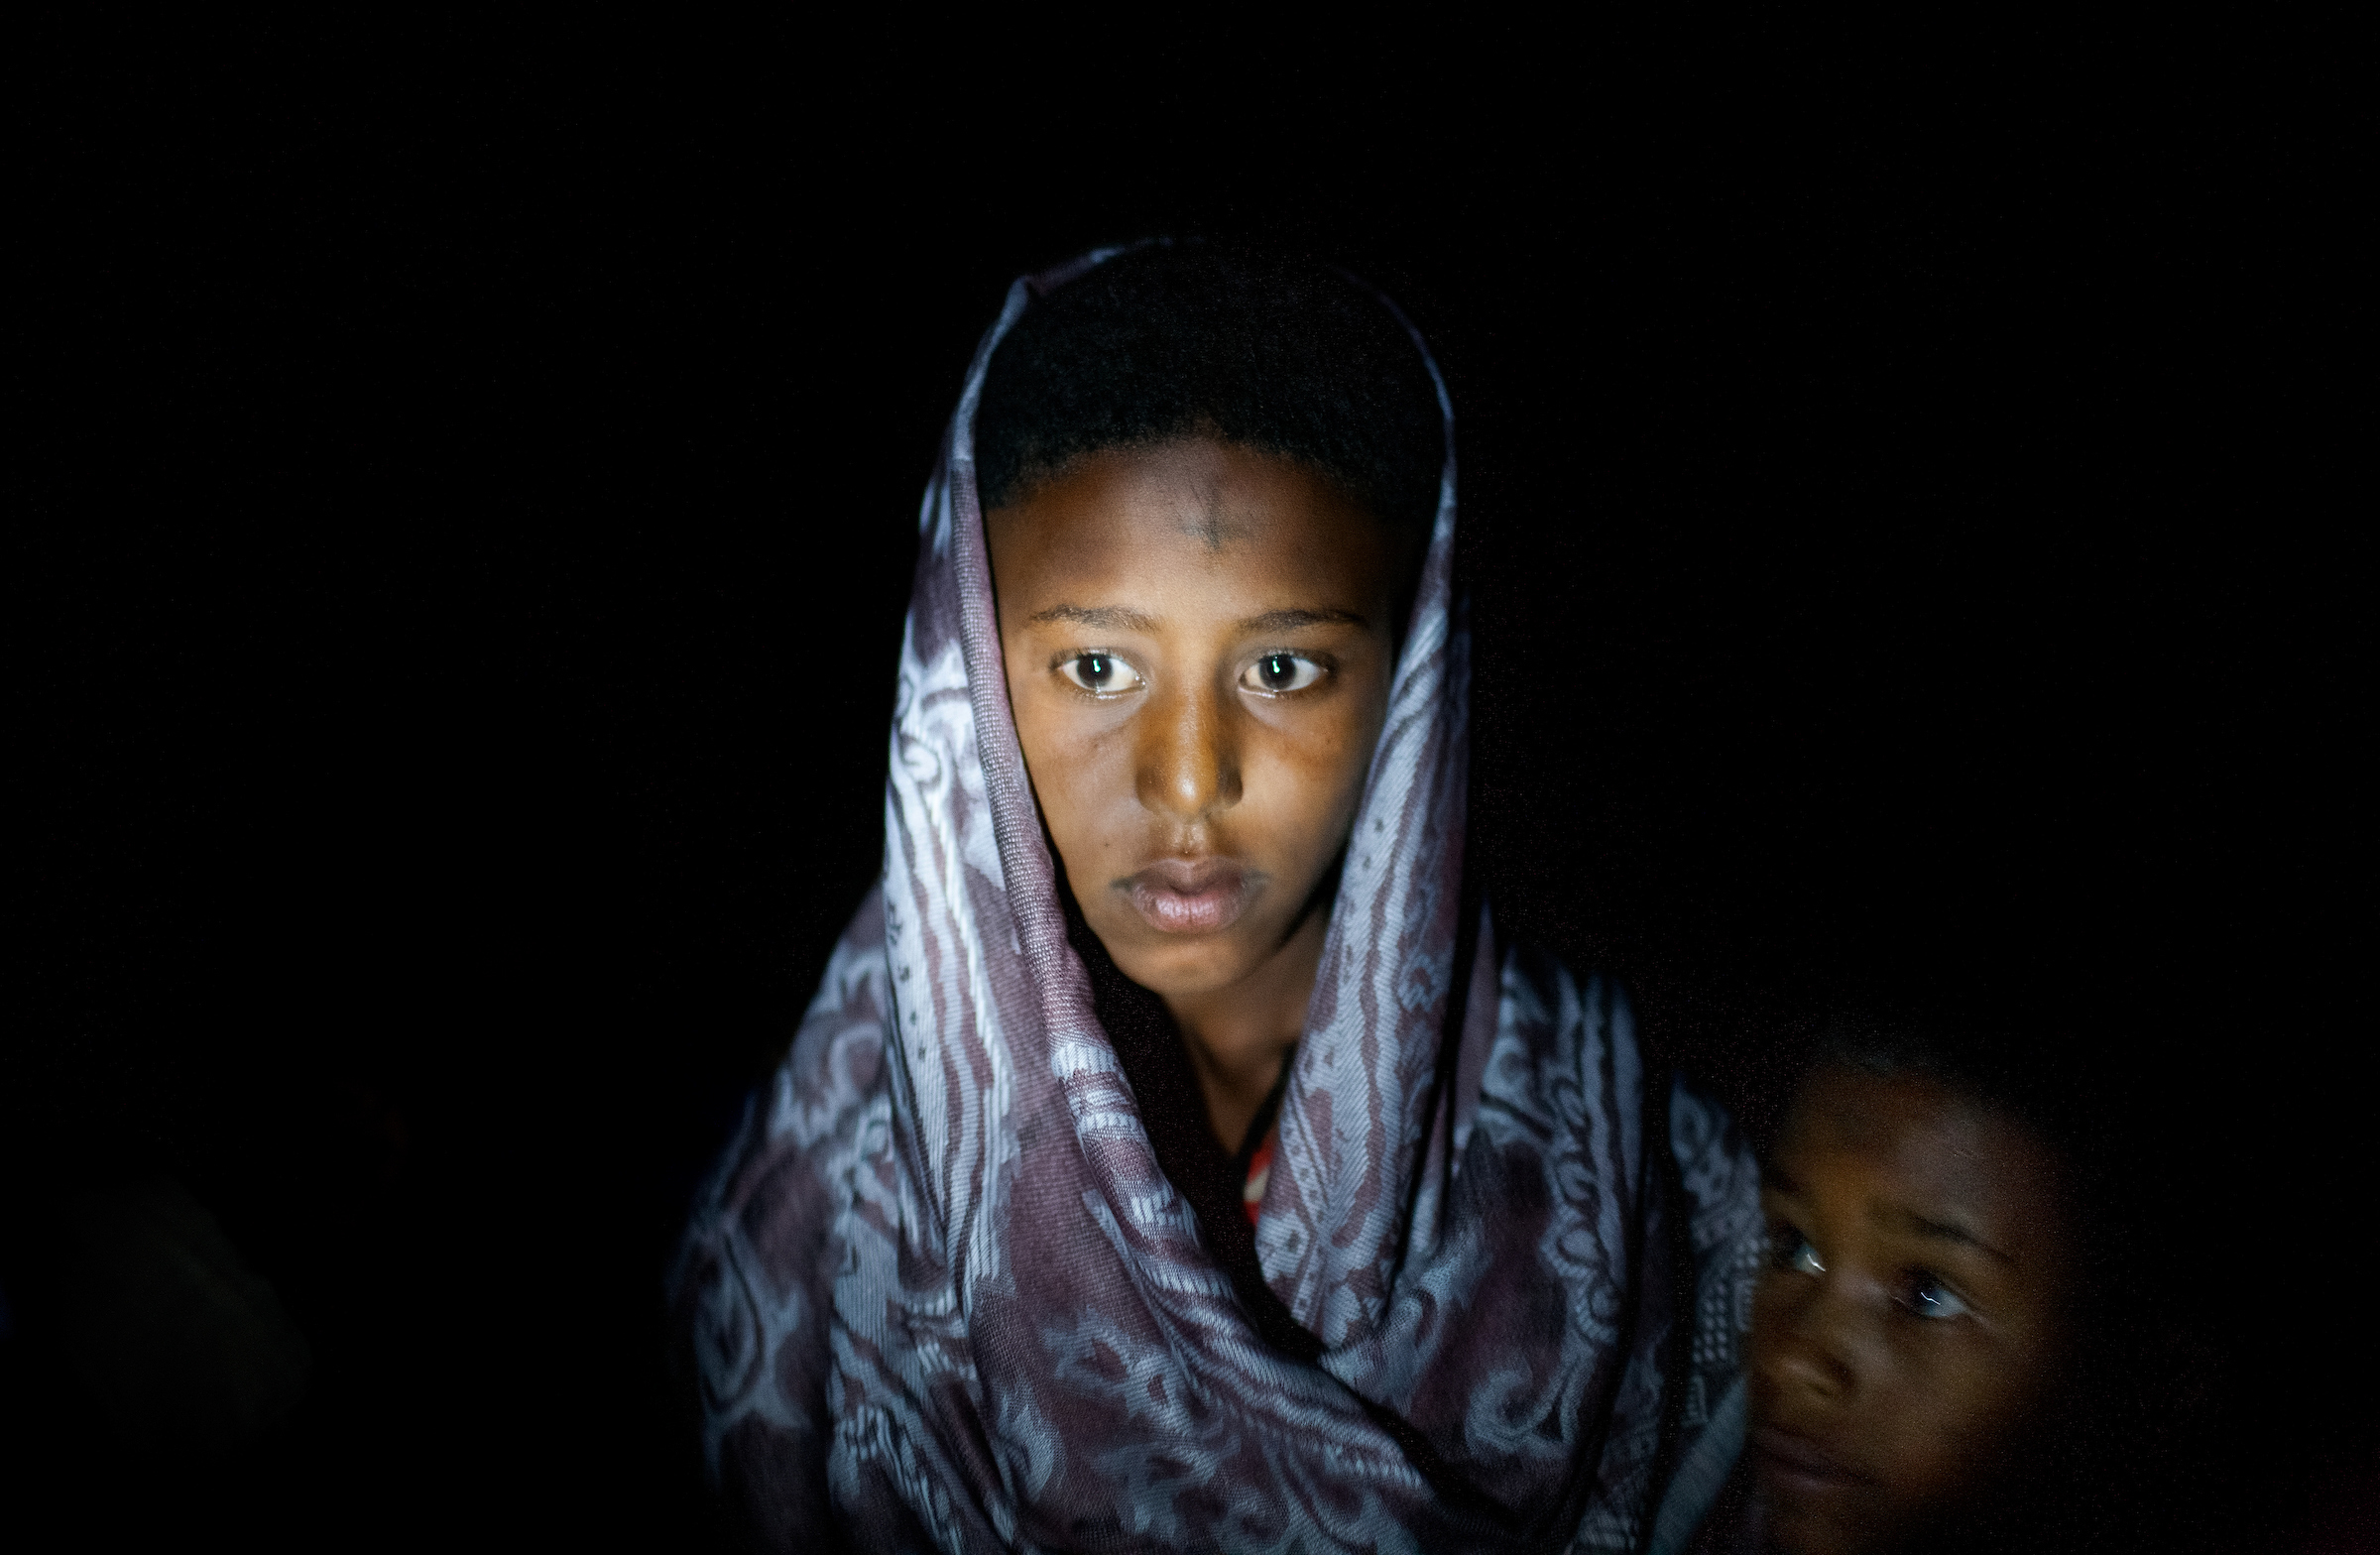 Destaye, 11, is dressed in traditional Ethiopian Orthodox wedding attire for her marriage to Addisu, 23, a priest.